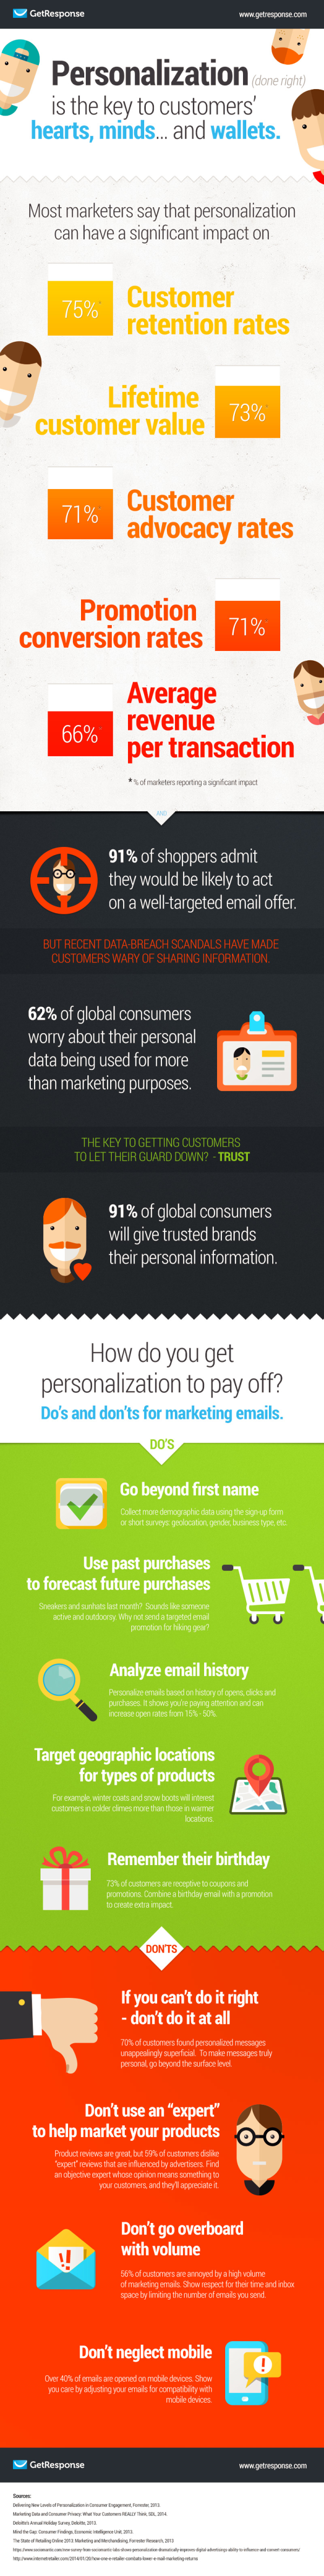 Infographic - Personalization The Key To Customers Hearts Minds And Wallets